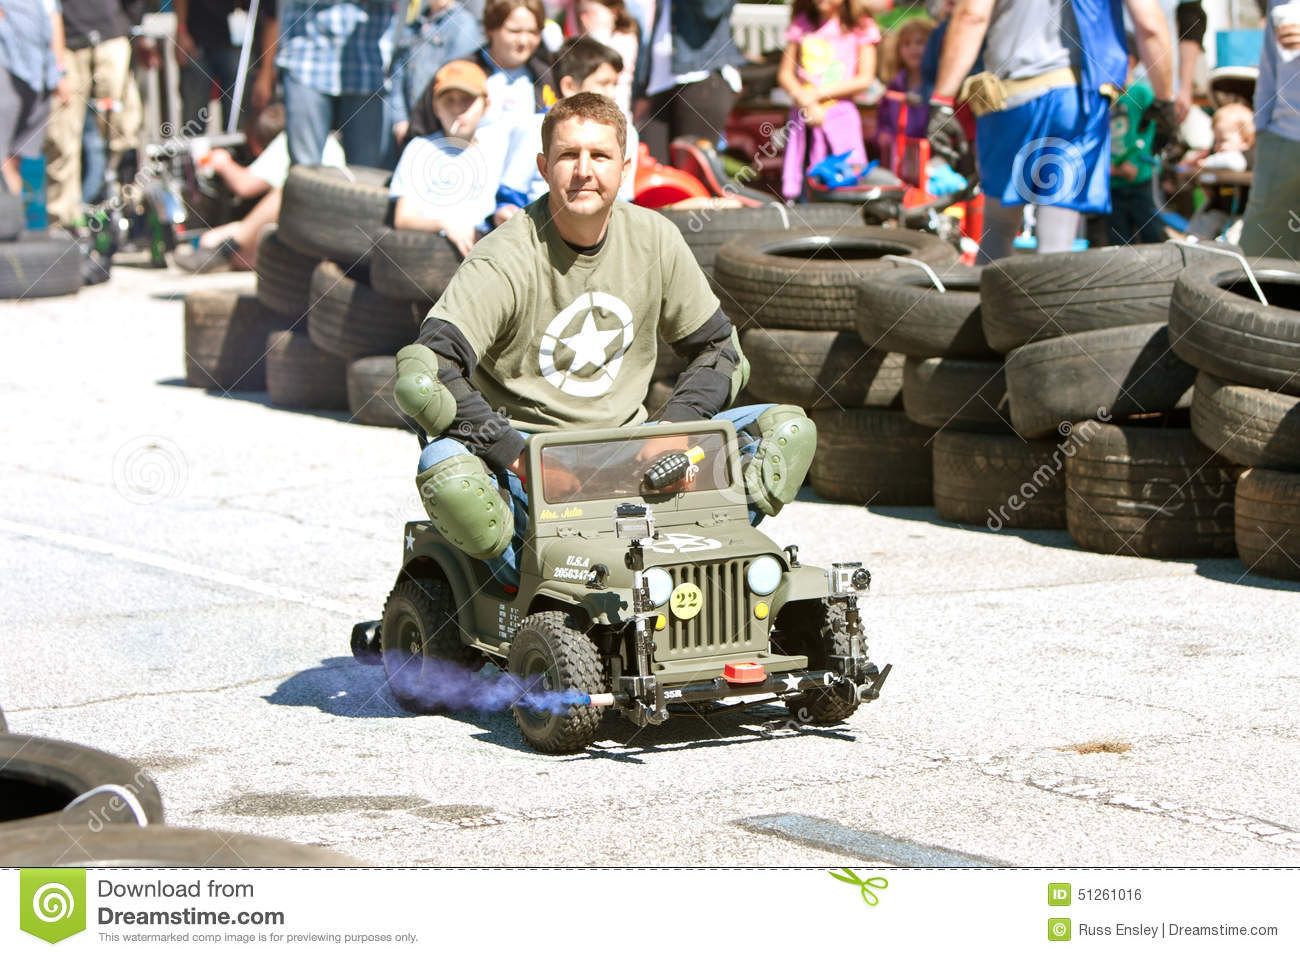 [Image: man-races-miniature-army-jeep-fair-decat...261016.jpg]